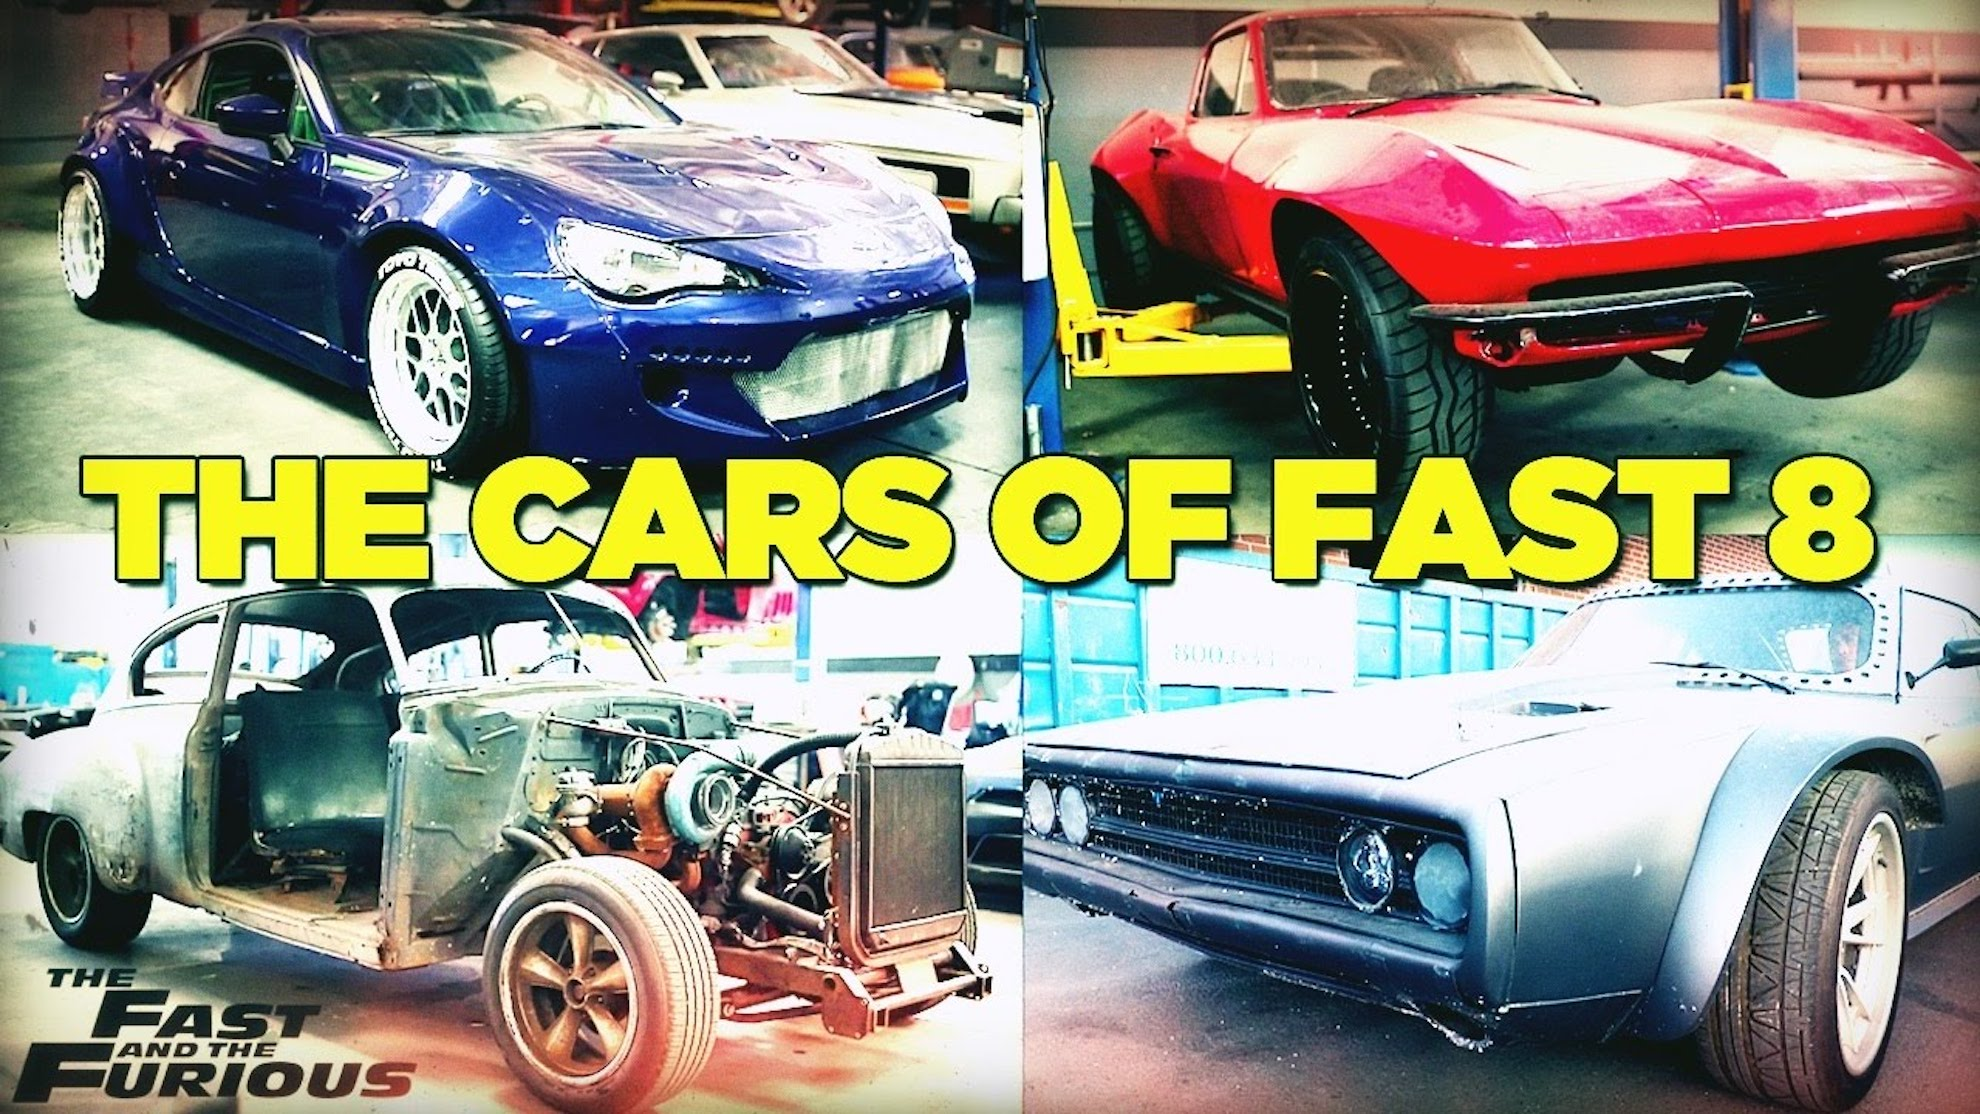 Meet The Cars Of Fast And Furious 8